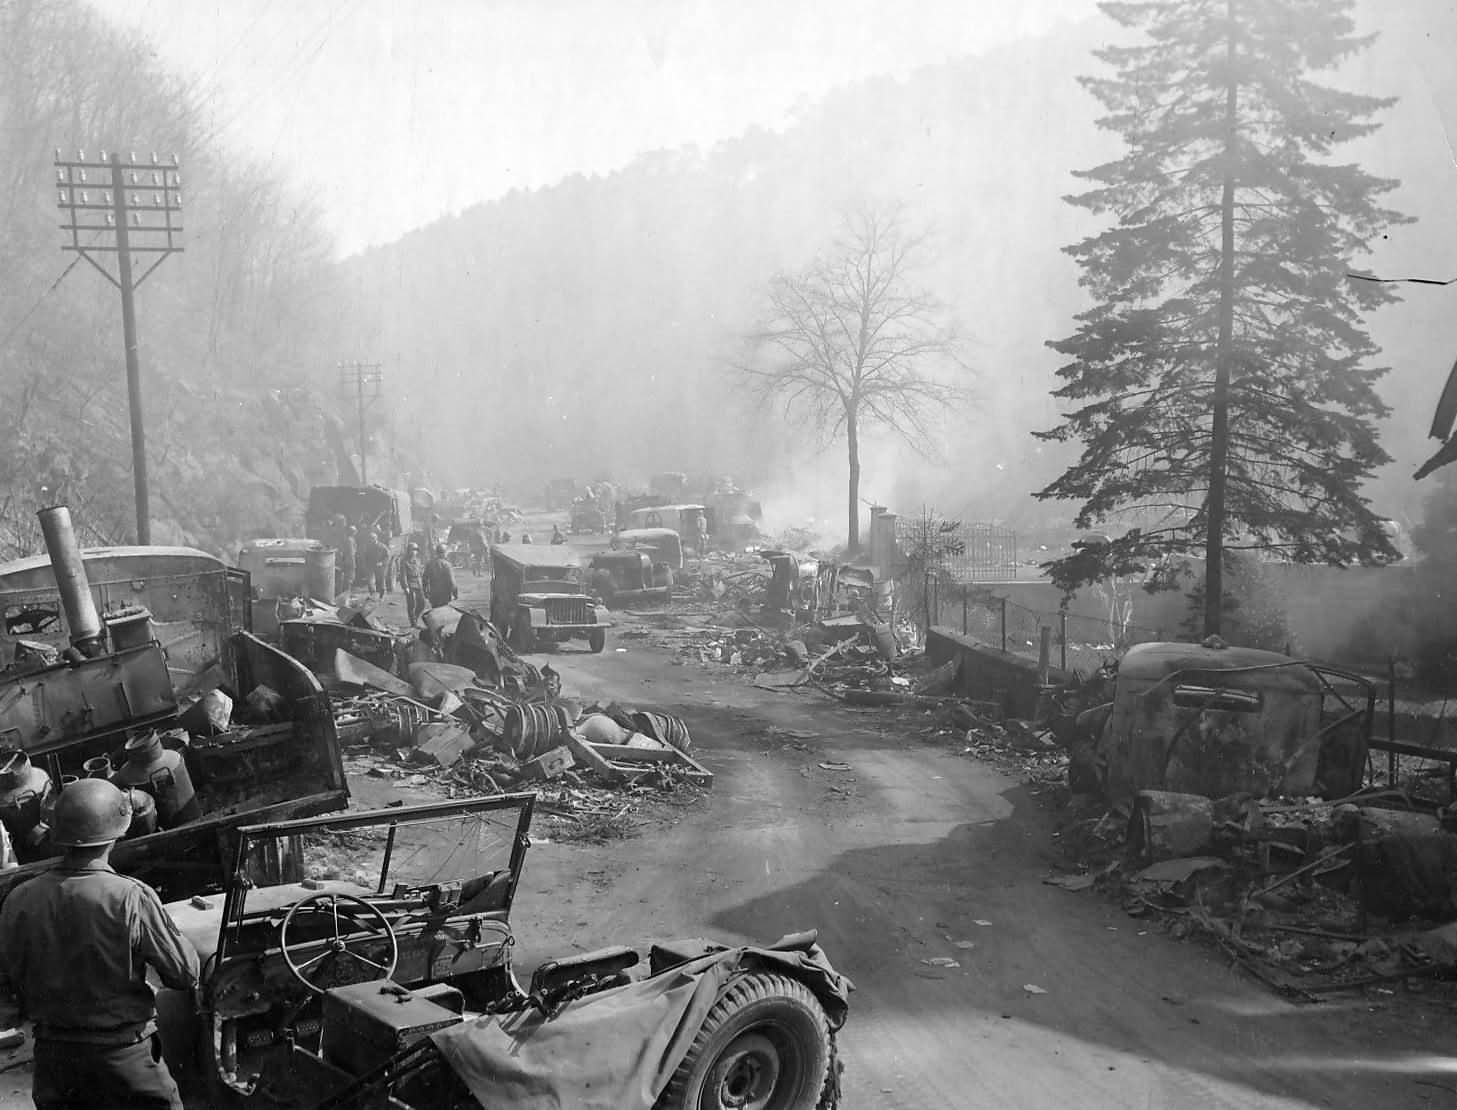 German Trucks Wrecks On Road Durkheim Germany 1945